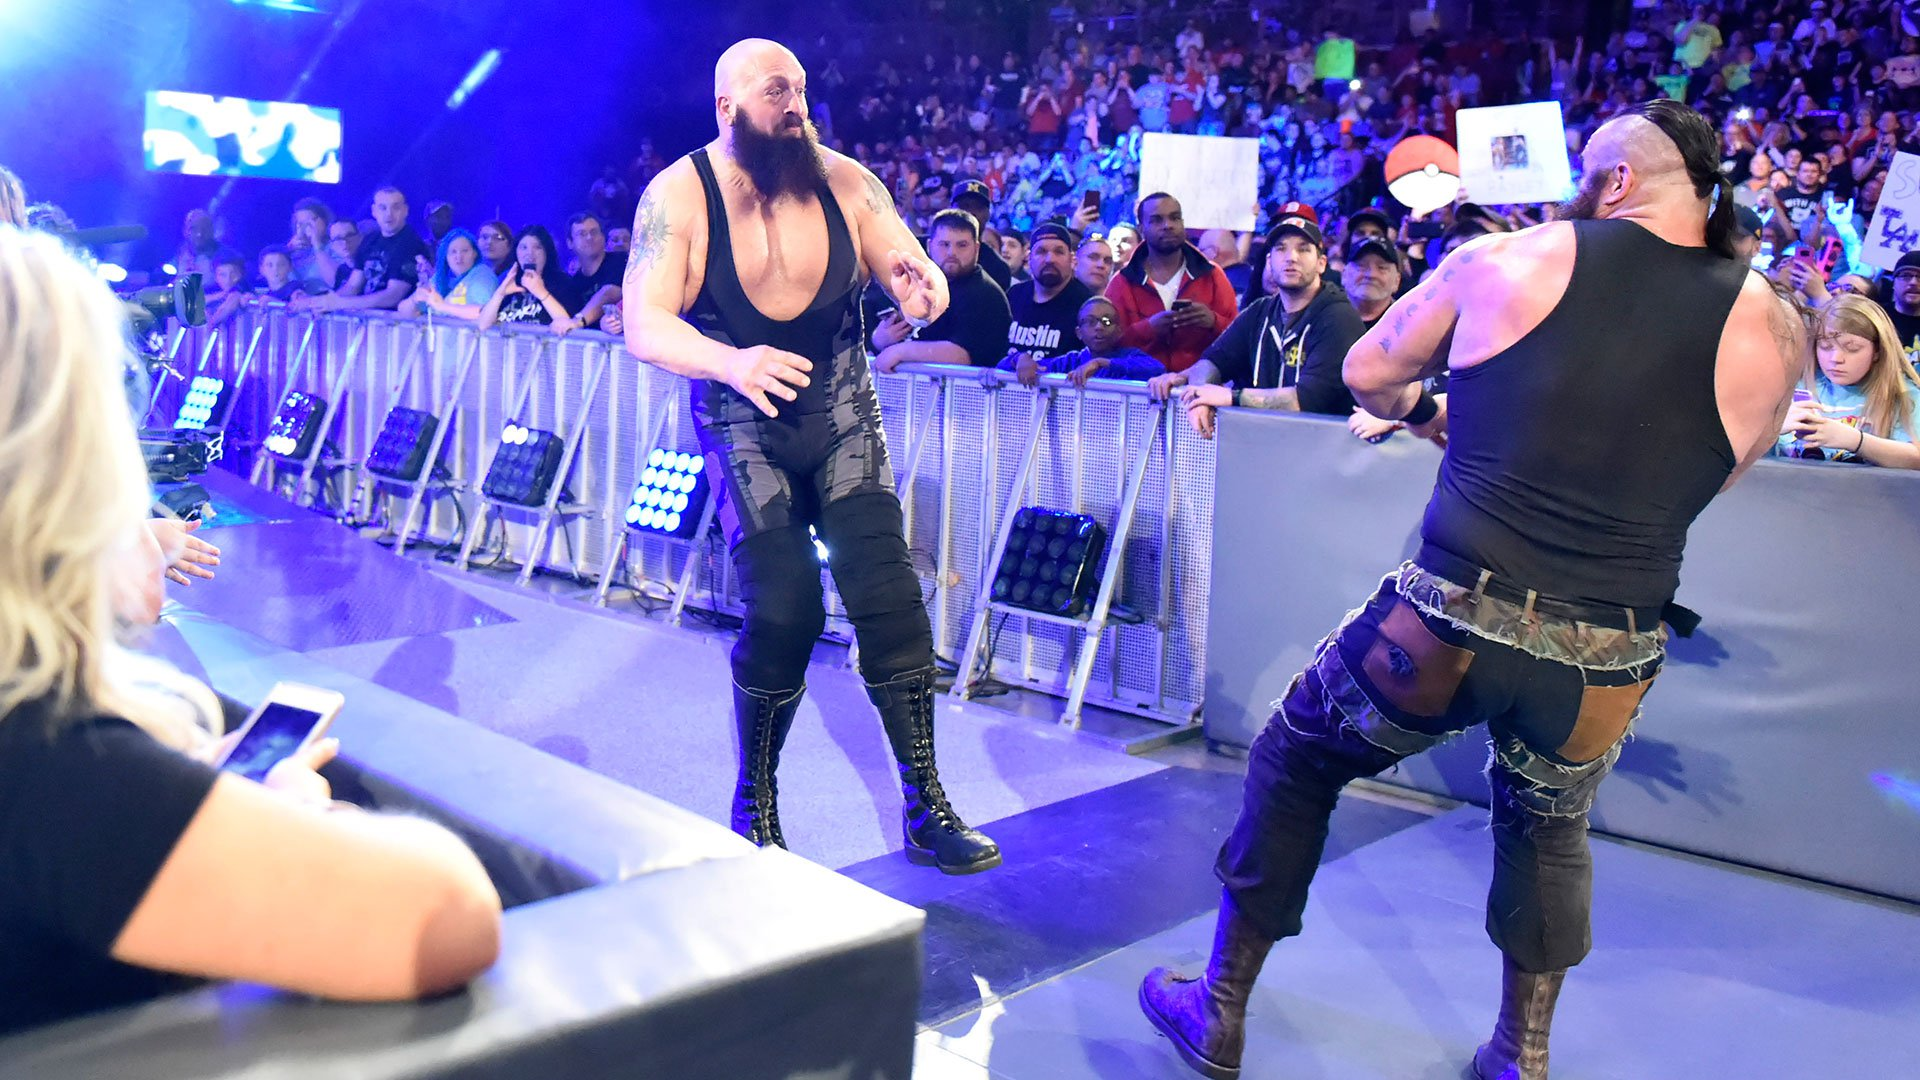 Strowman meets Big Show in the aisle and the fight is on.